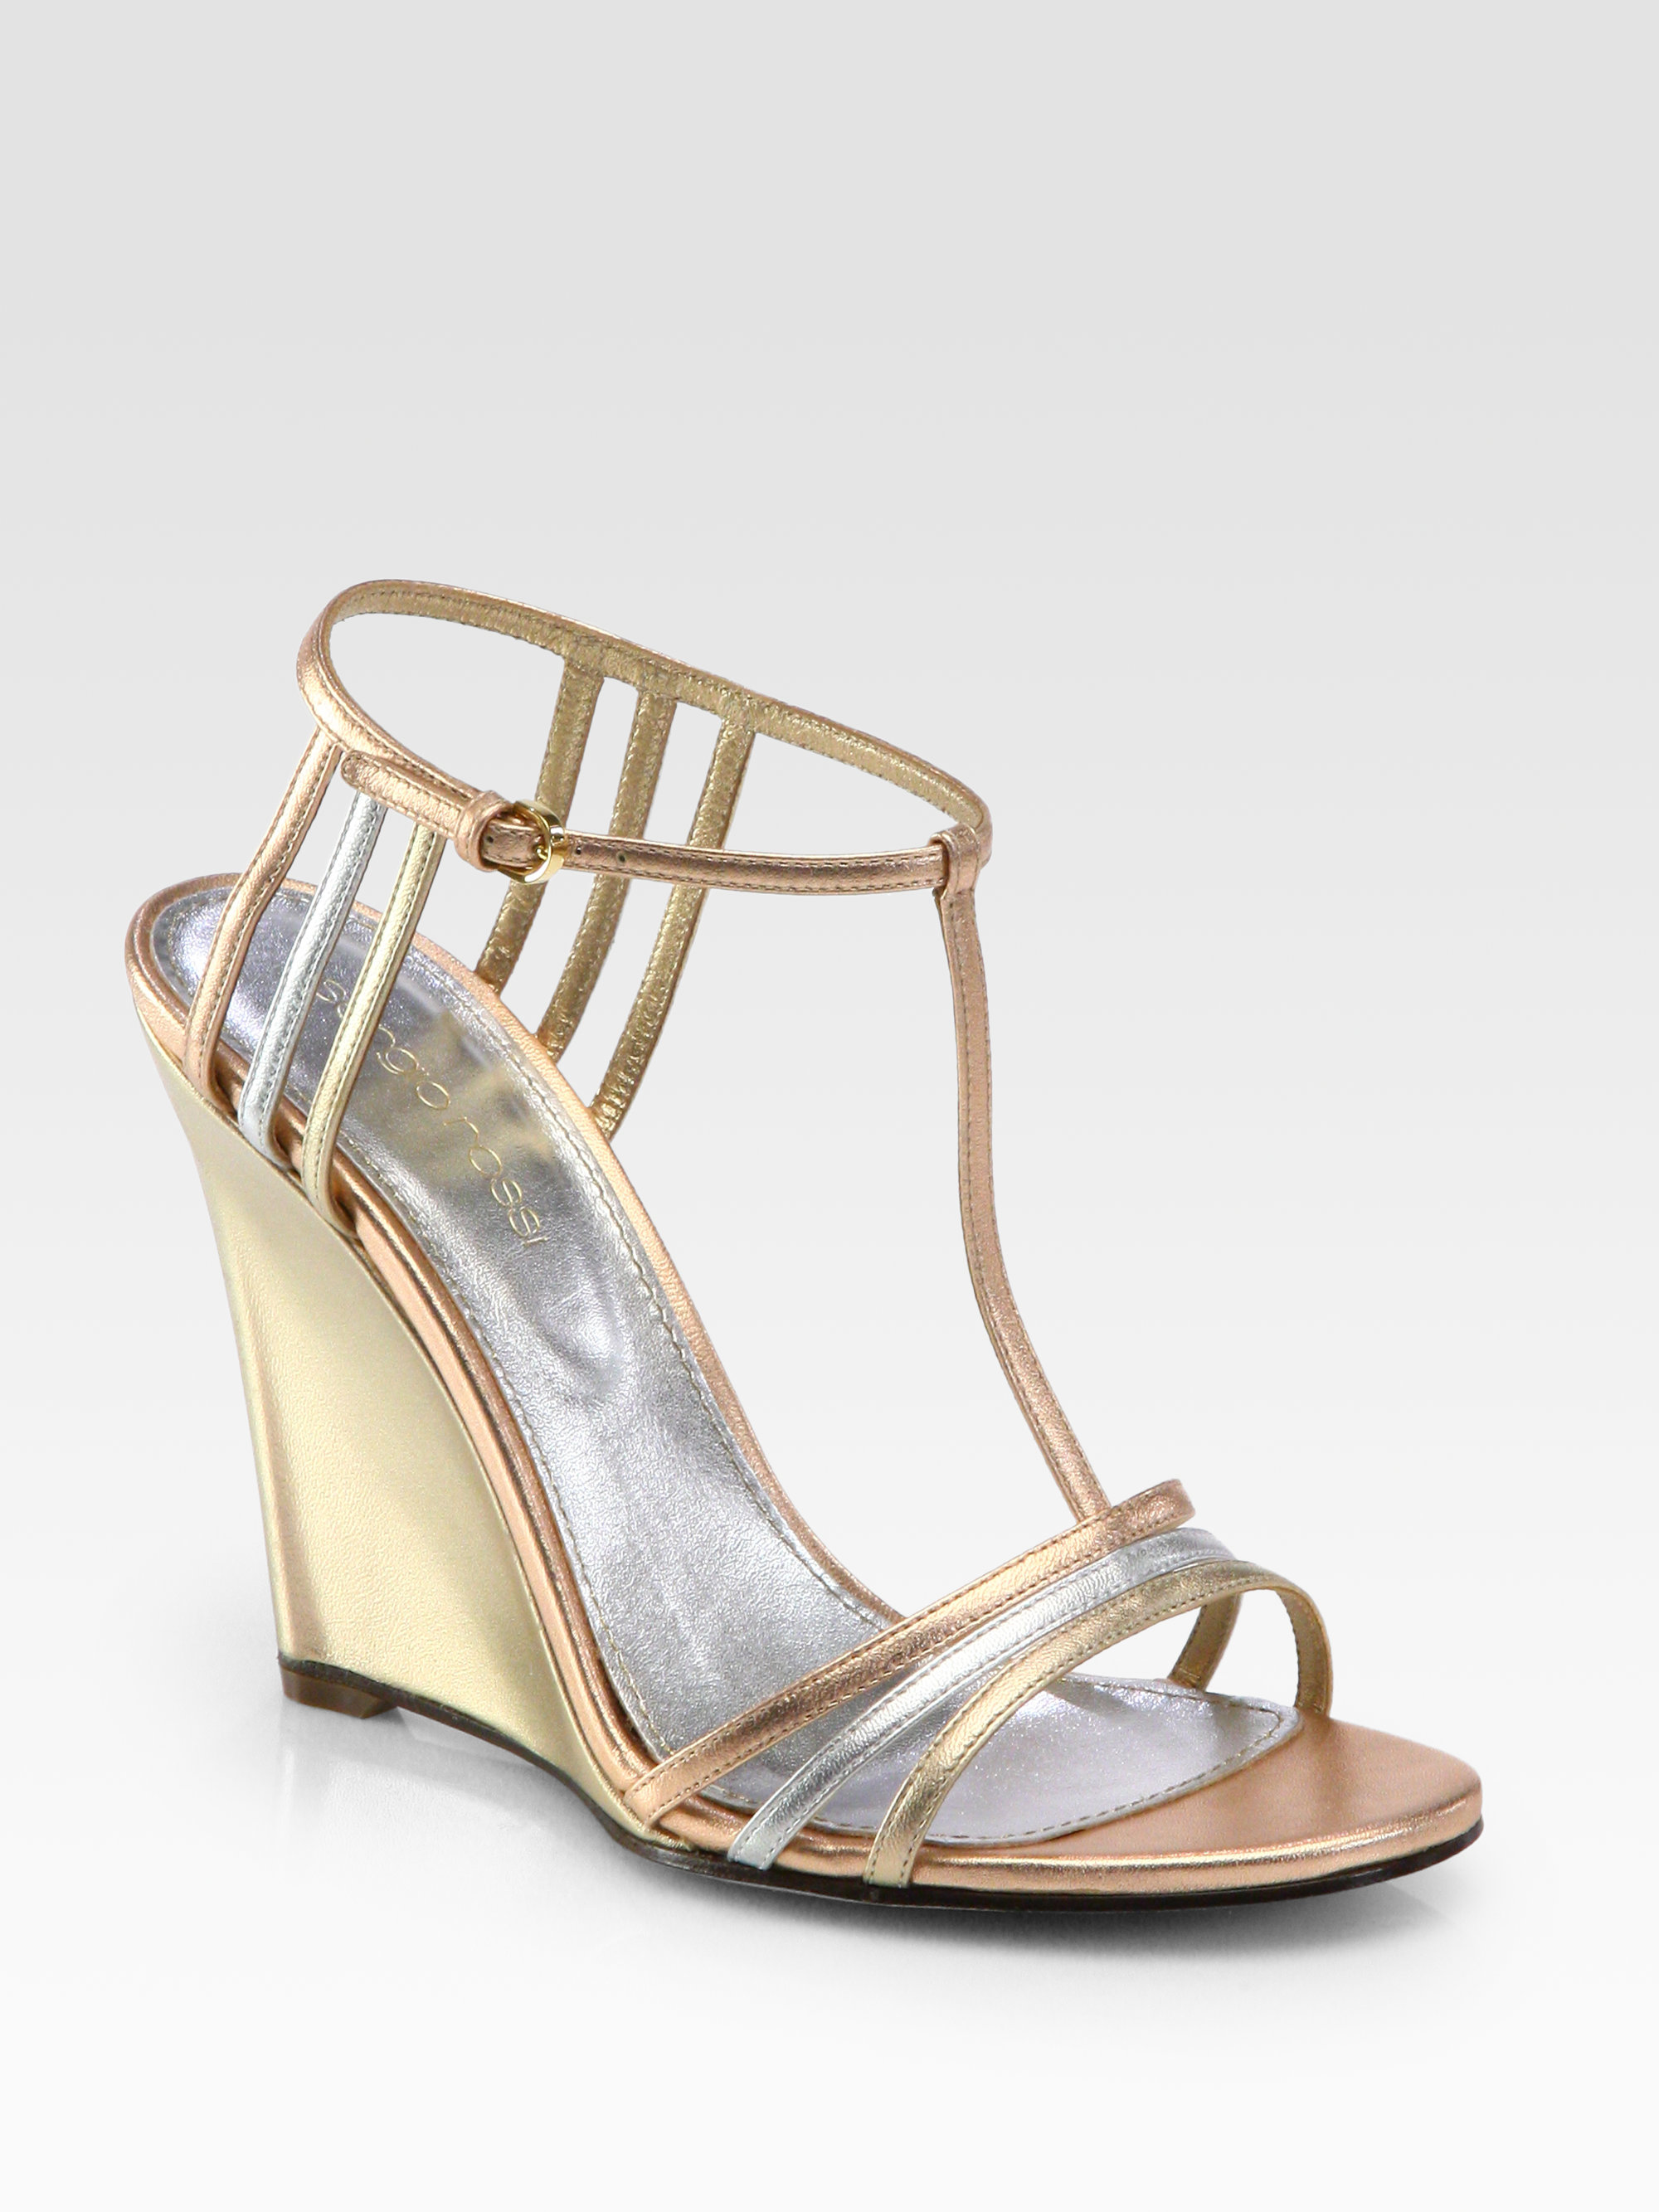 Sergio rossi Metallic Leather Tstrap Wedge Sandals in Metallic | Lyst